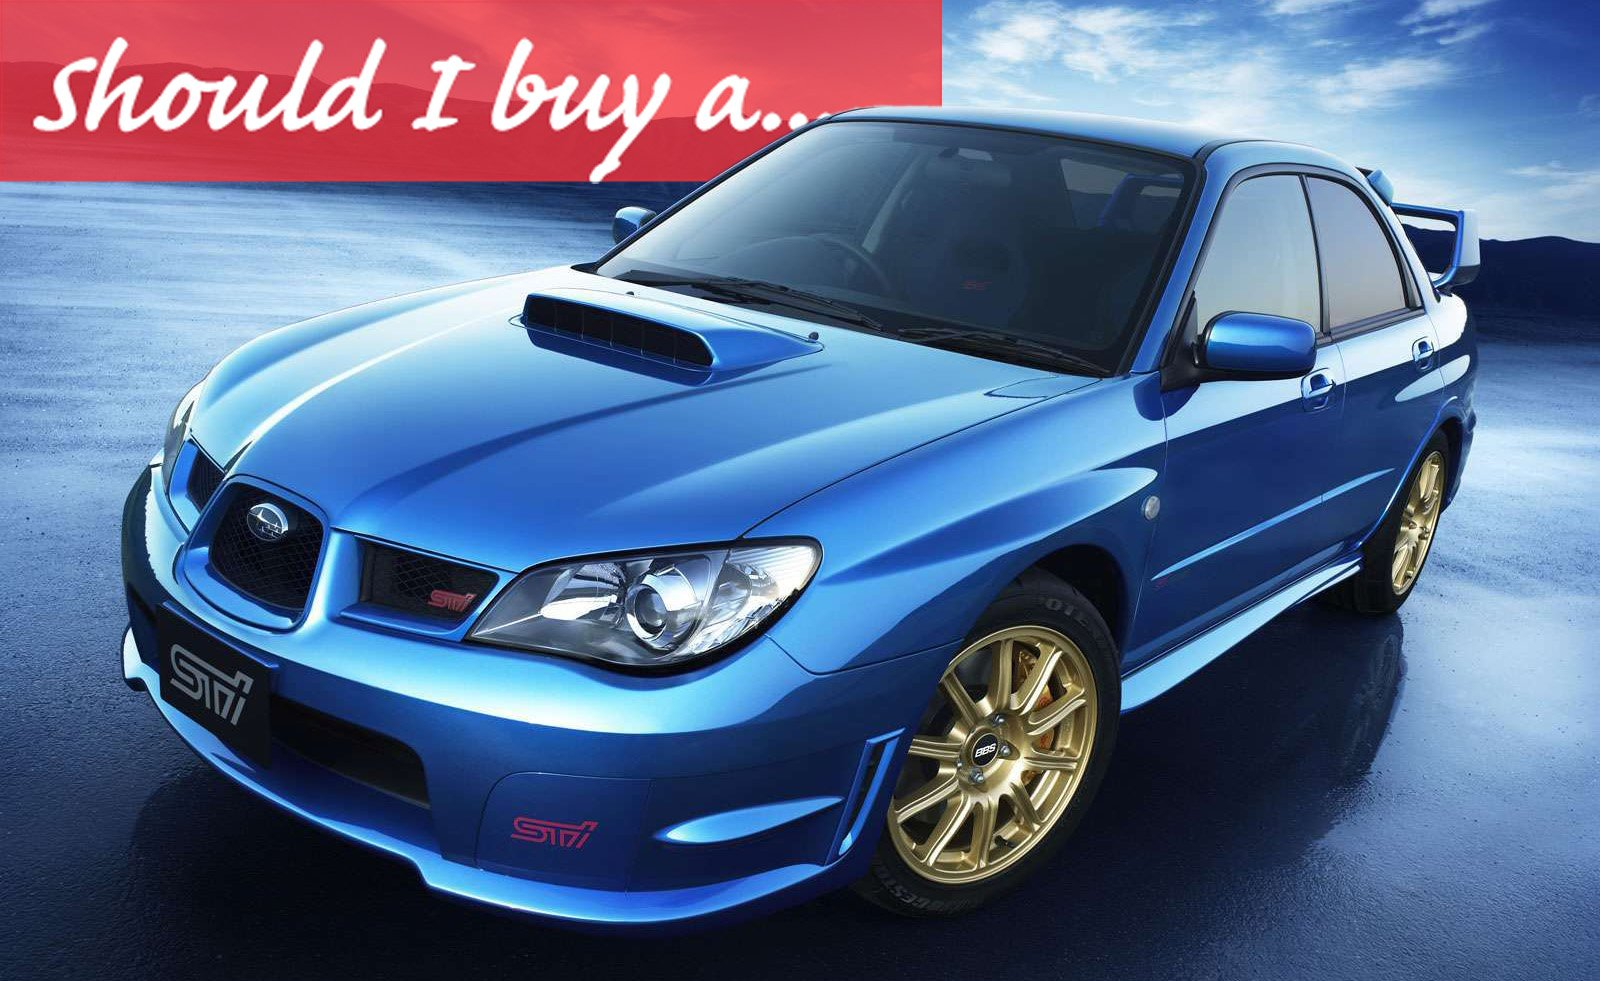 Should I Buy a Used Subaru WRX?